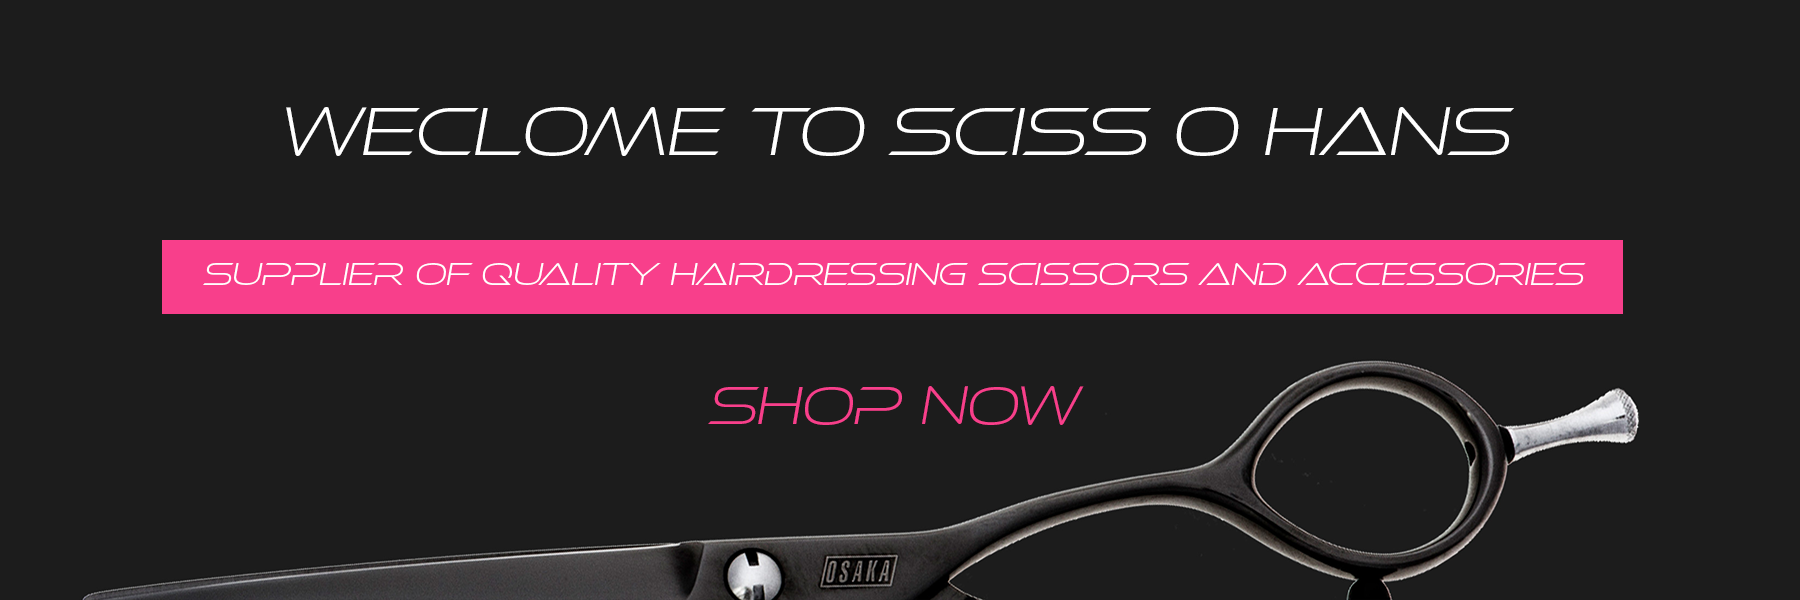 Sciss O Hans - suppliers of hairdressing scissors and accessories